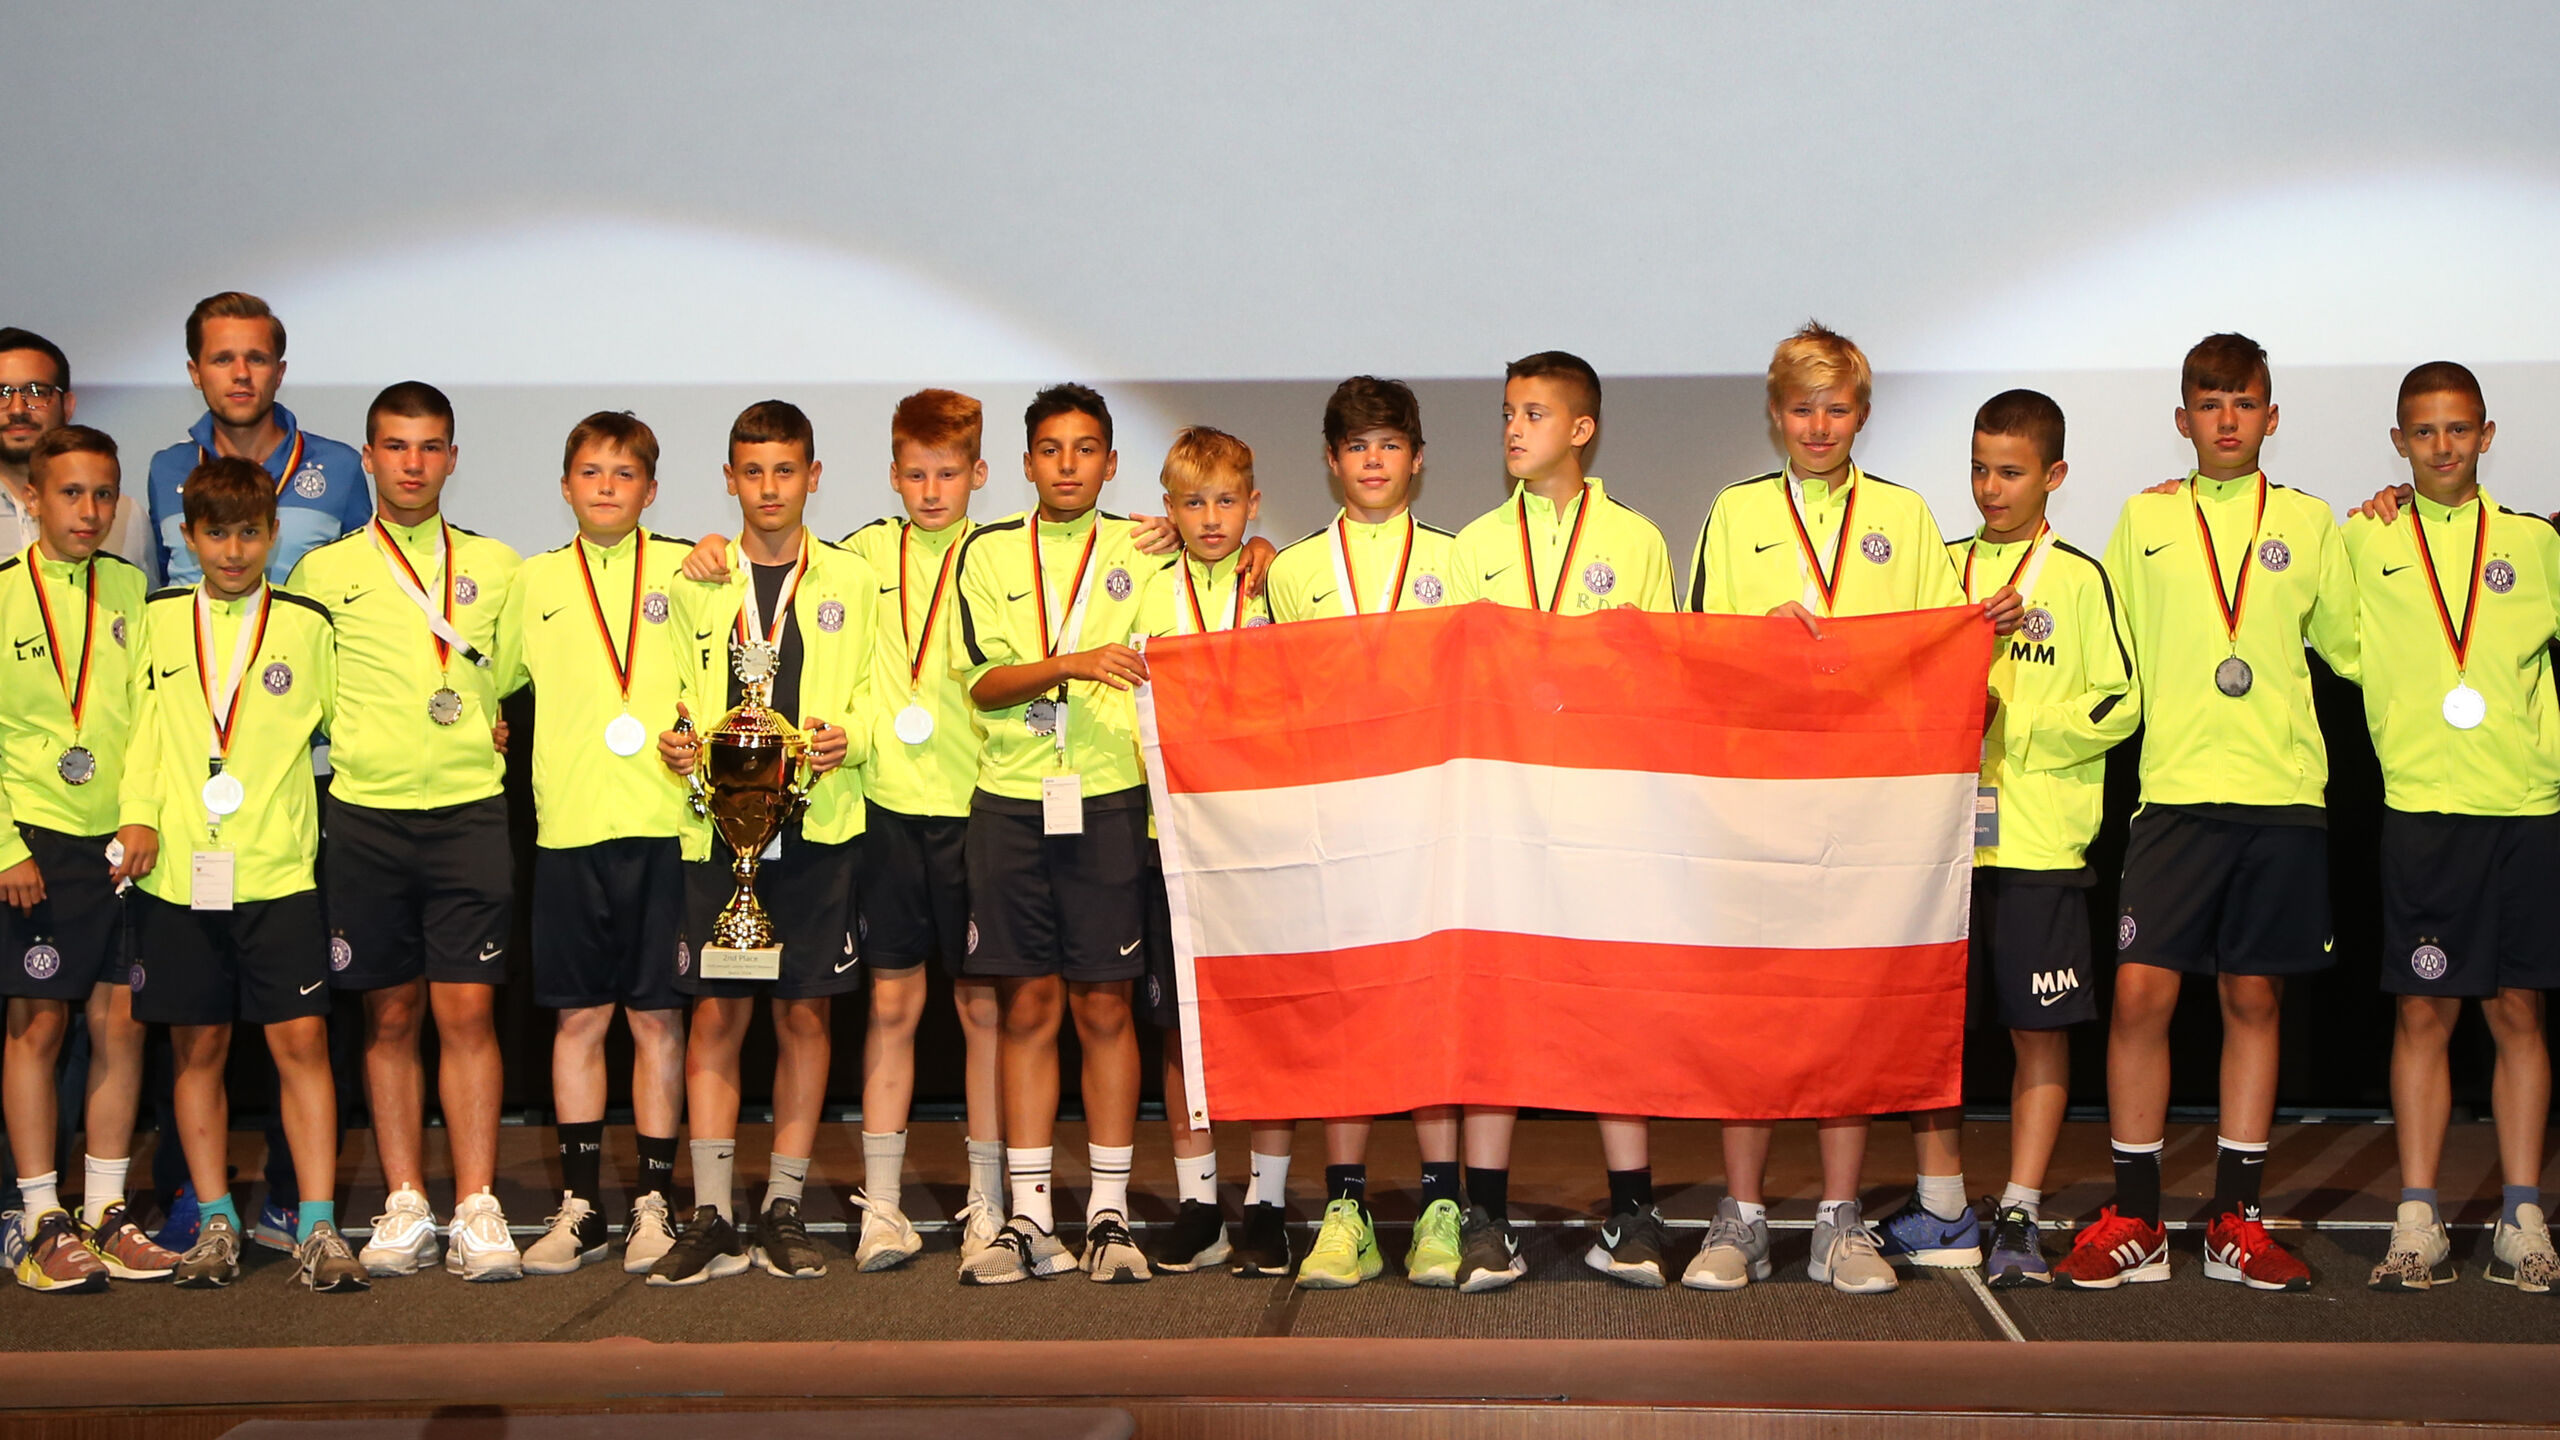 vw volkswagen junior masters fussball turnier